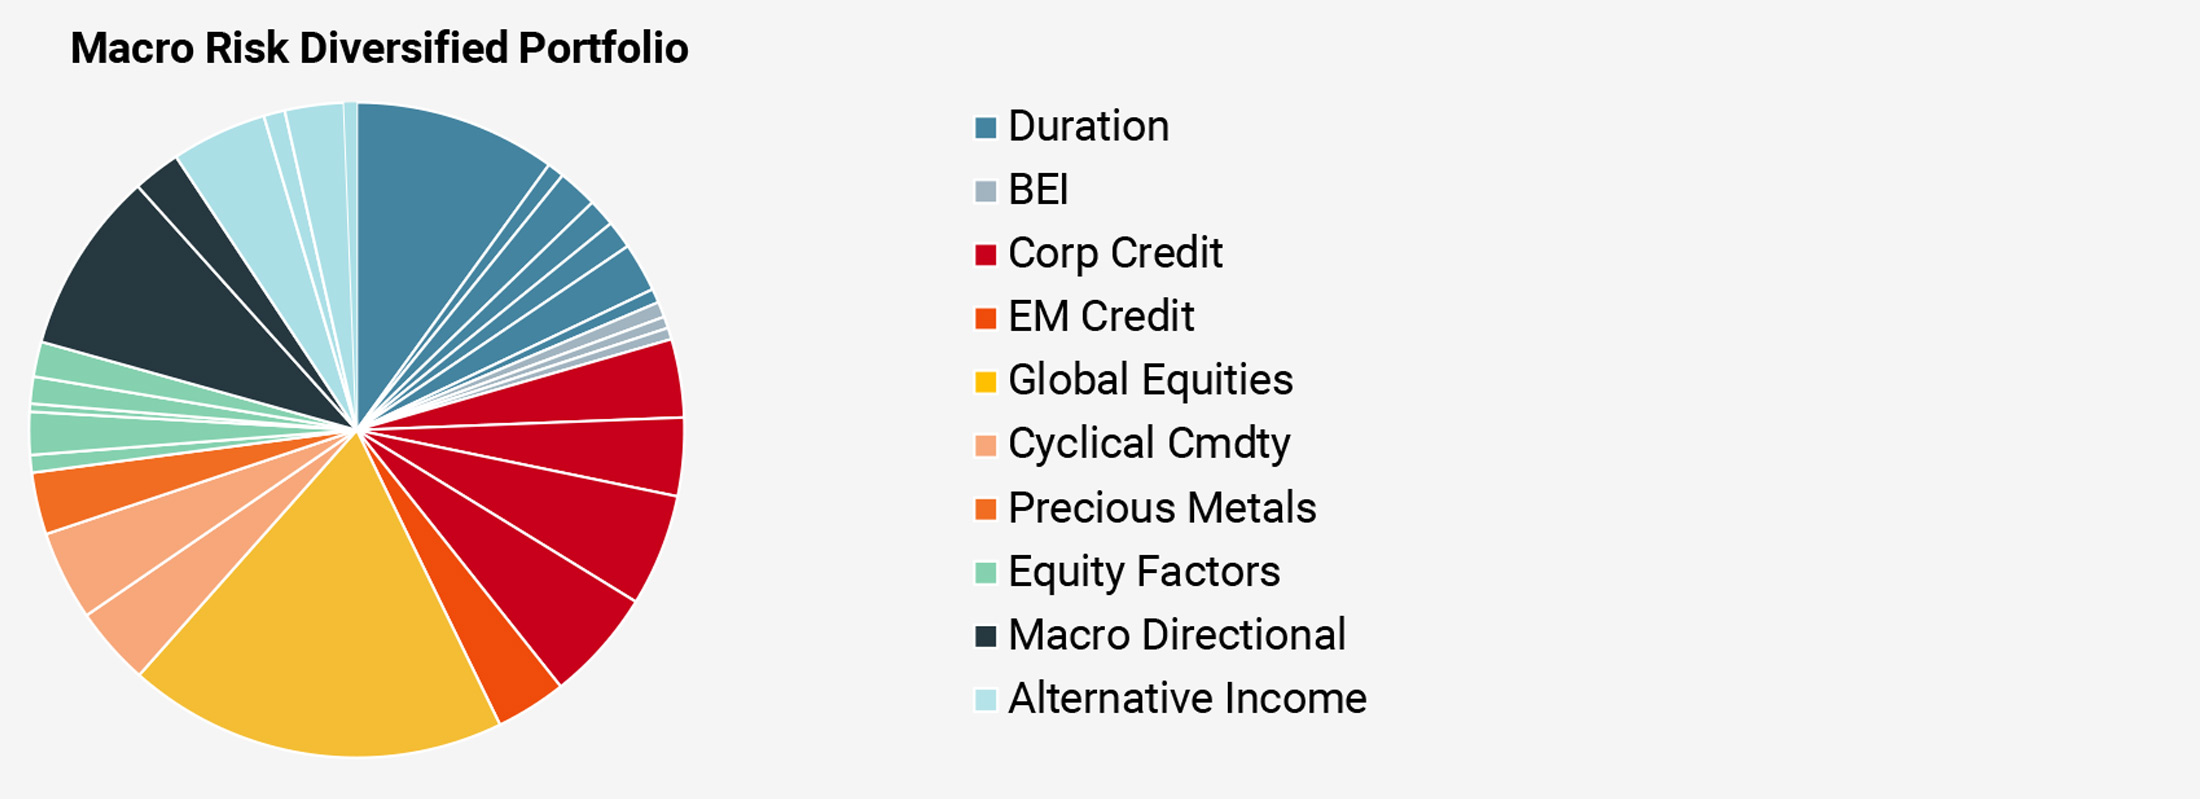 Figure 9b: A Fully Diversified Portfolio (capital allocation by risk premia)